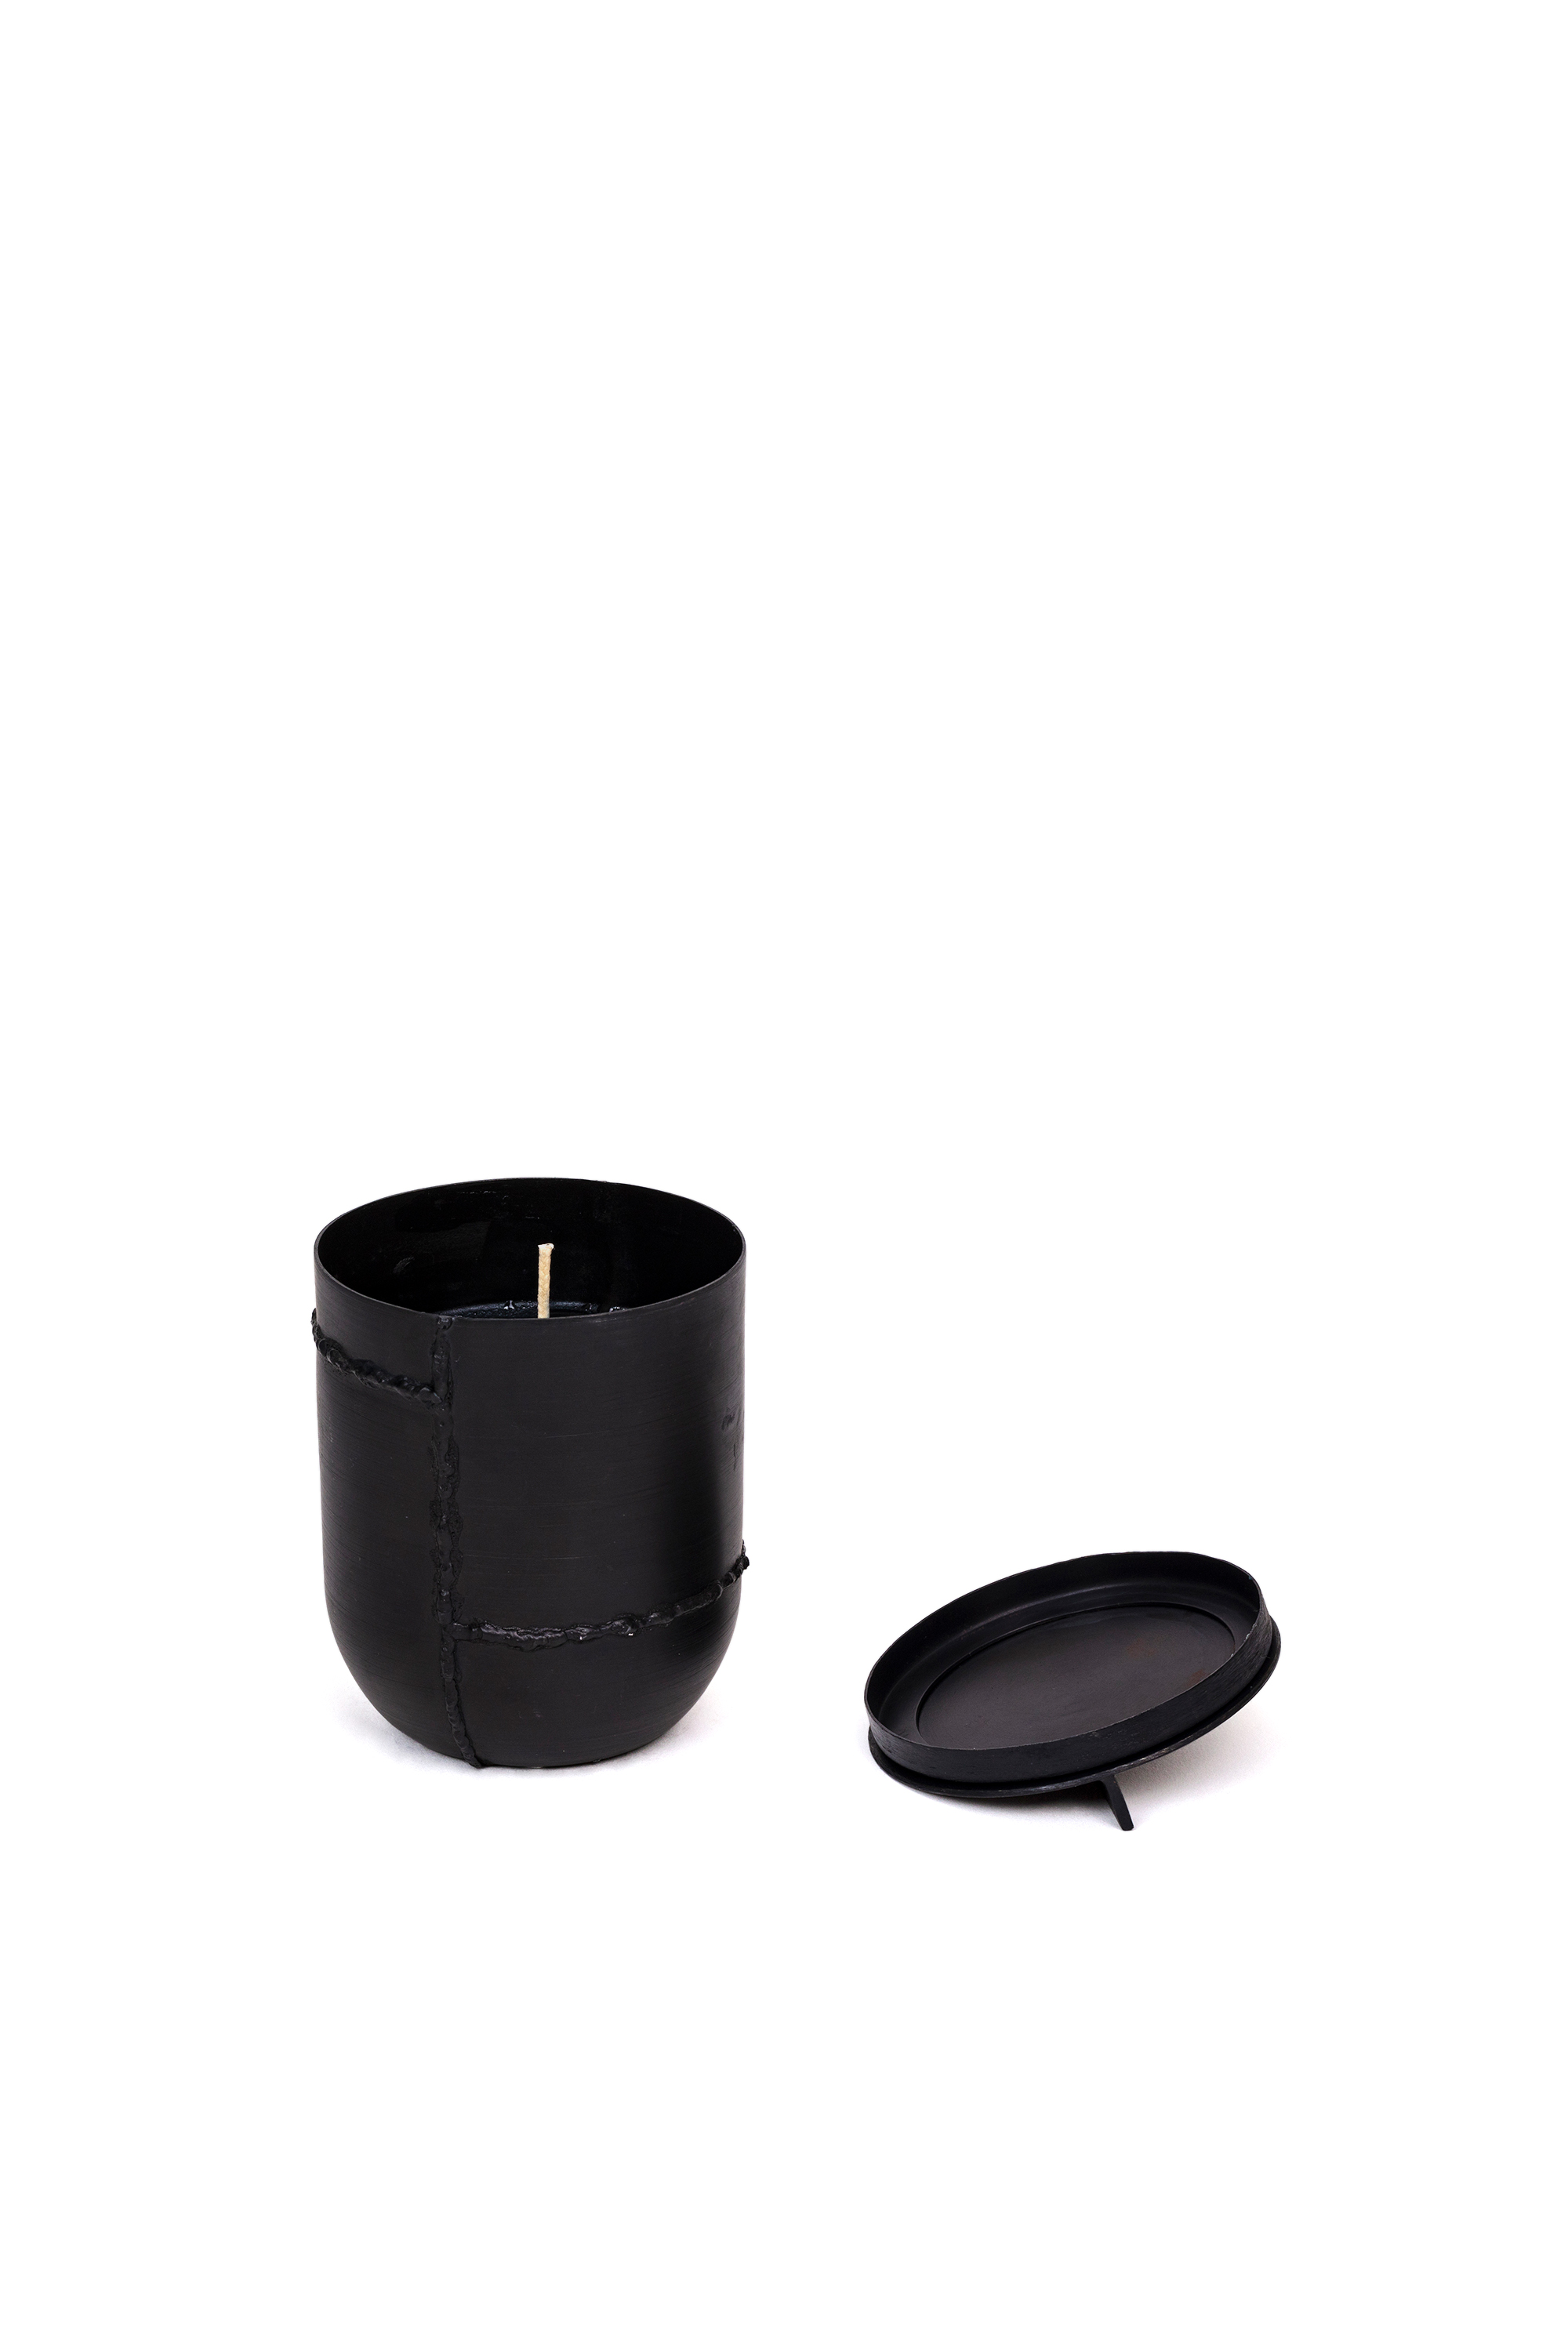 Diesel - 11161 HOME SCENTS,  - Home Accessories - Image 1